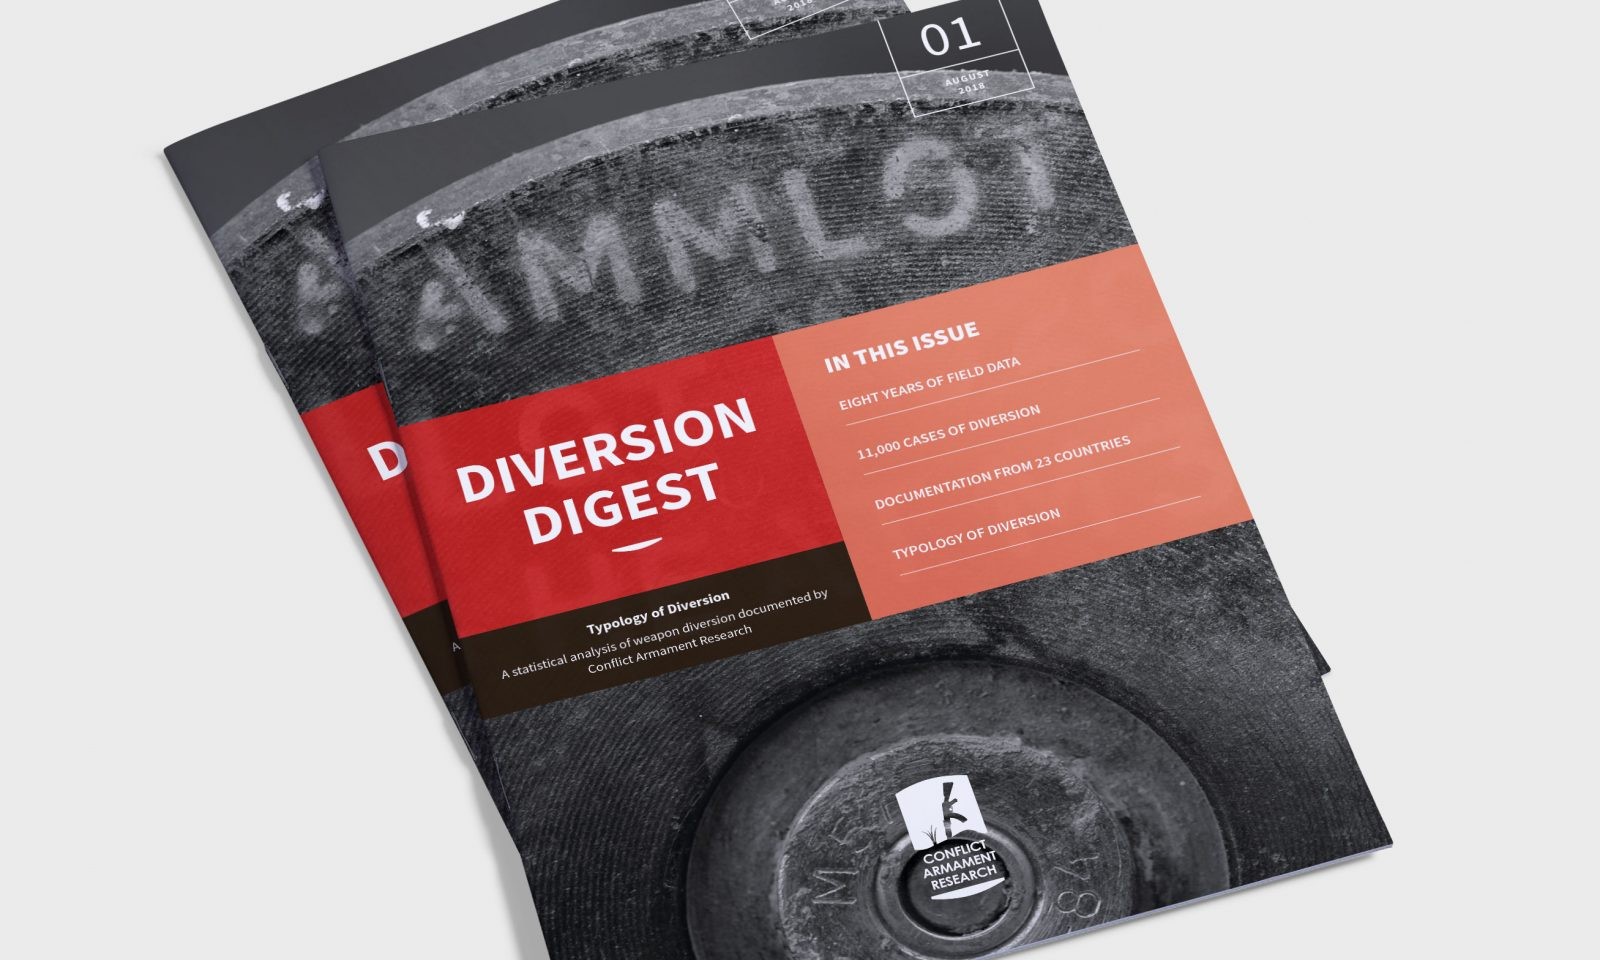 Diversion Digest cover